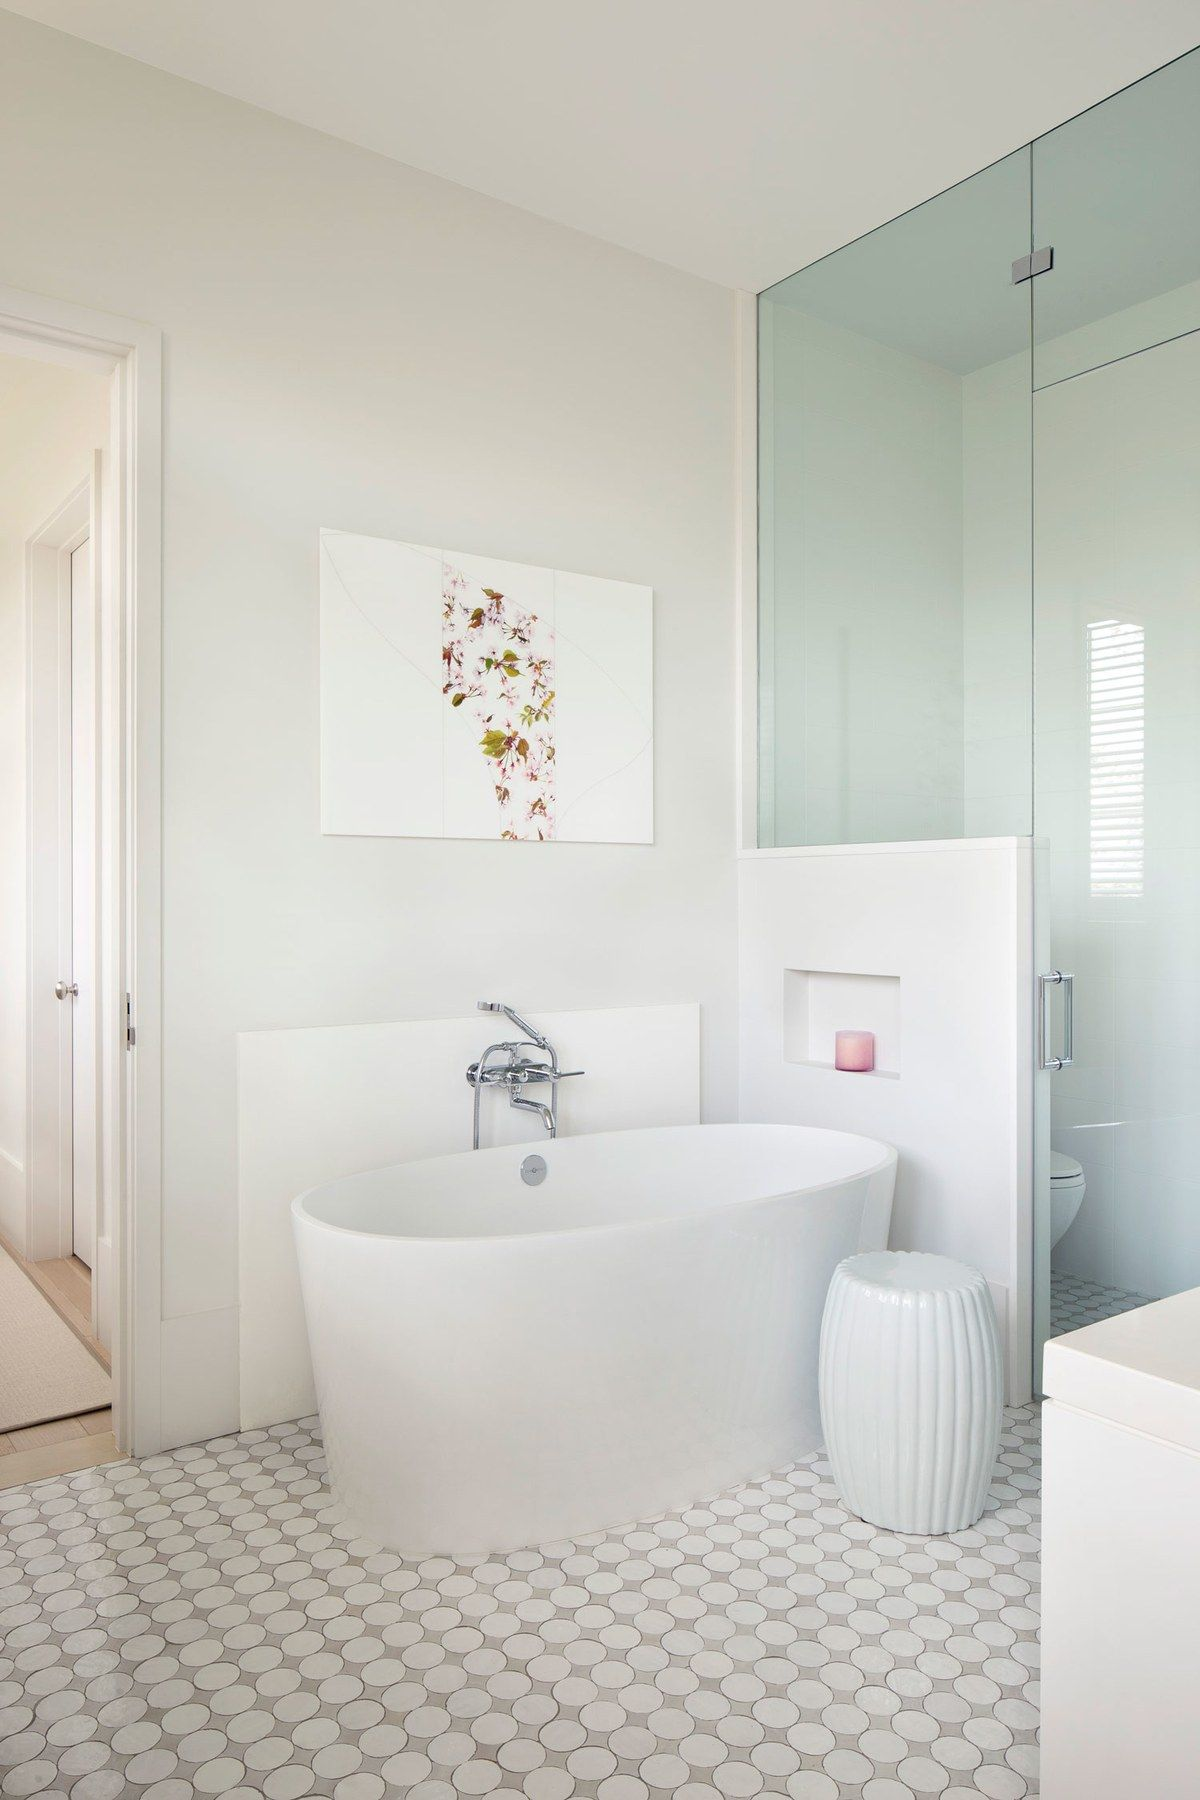 Badezimmer ideen klein the poolus graphic design inspired the flooring in the master bath